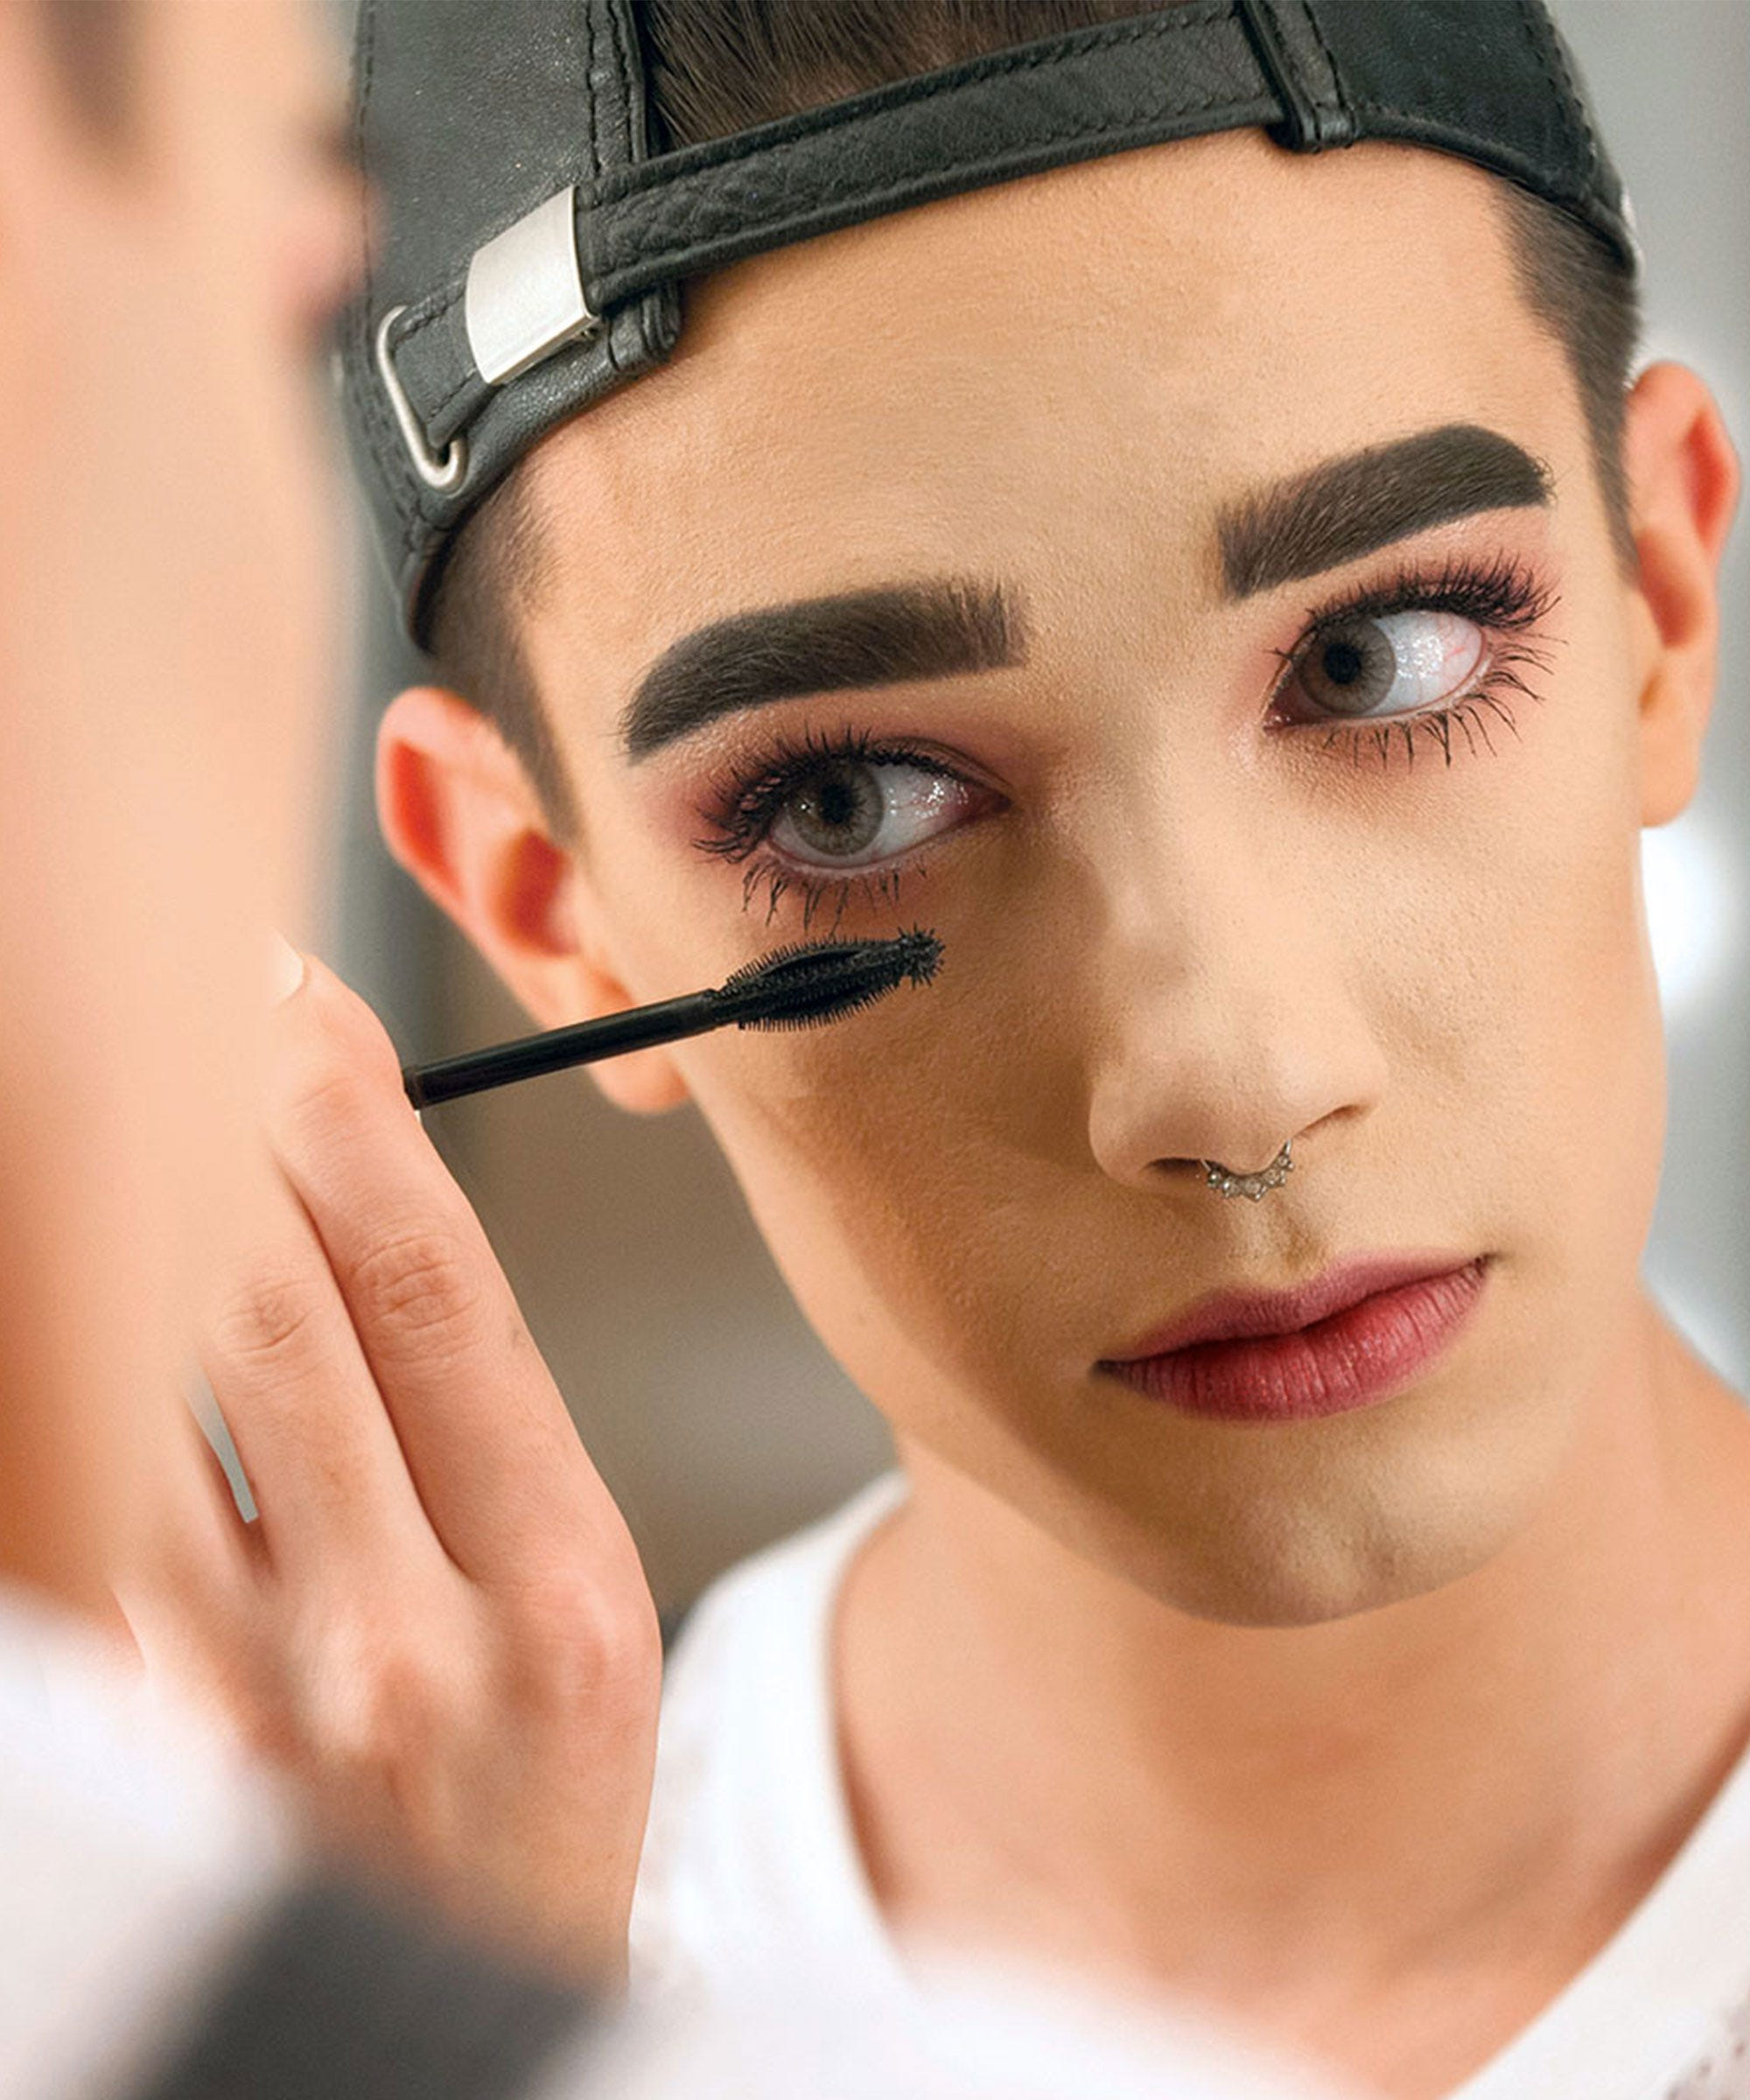 Covergirl new male face teen makeup artist instagram ccuart Image collections